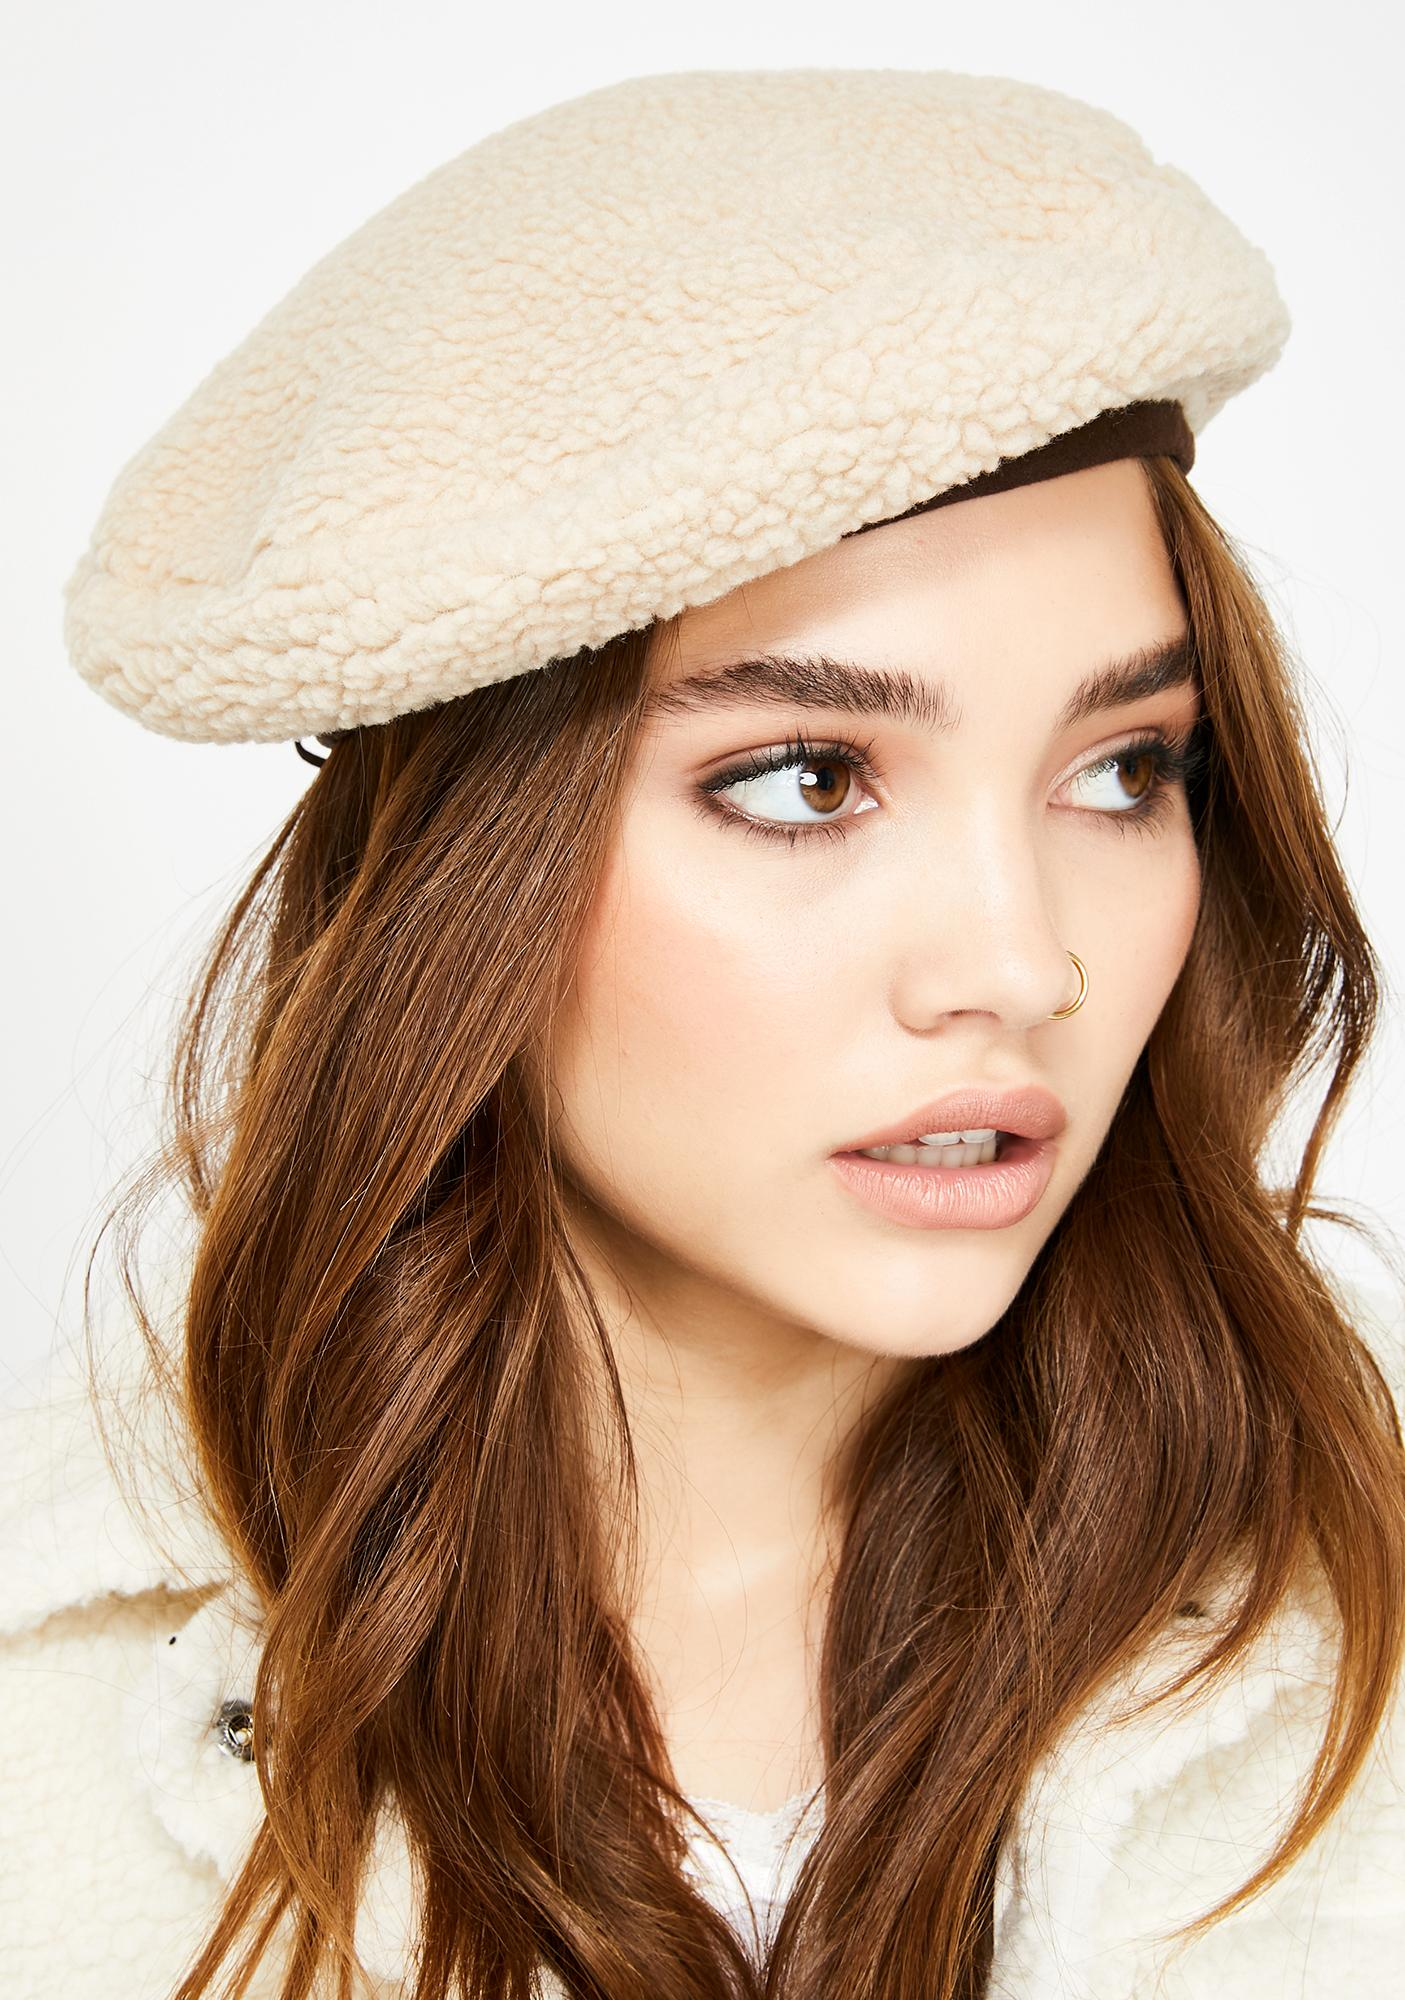 Baby Don't Herd Me Sherpa Beret